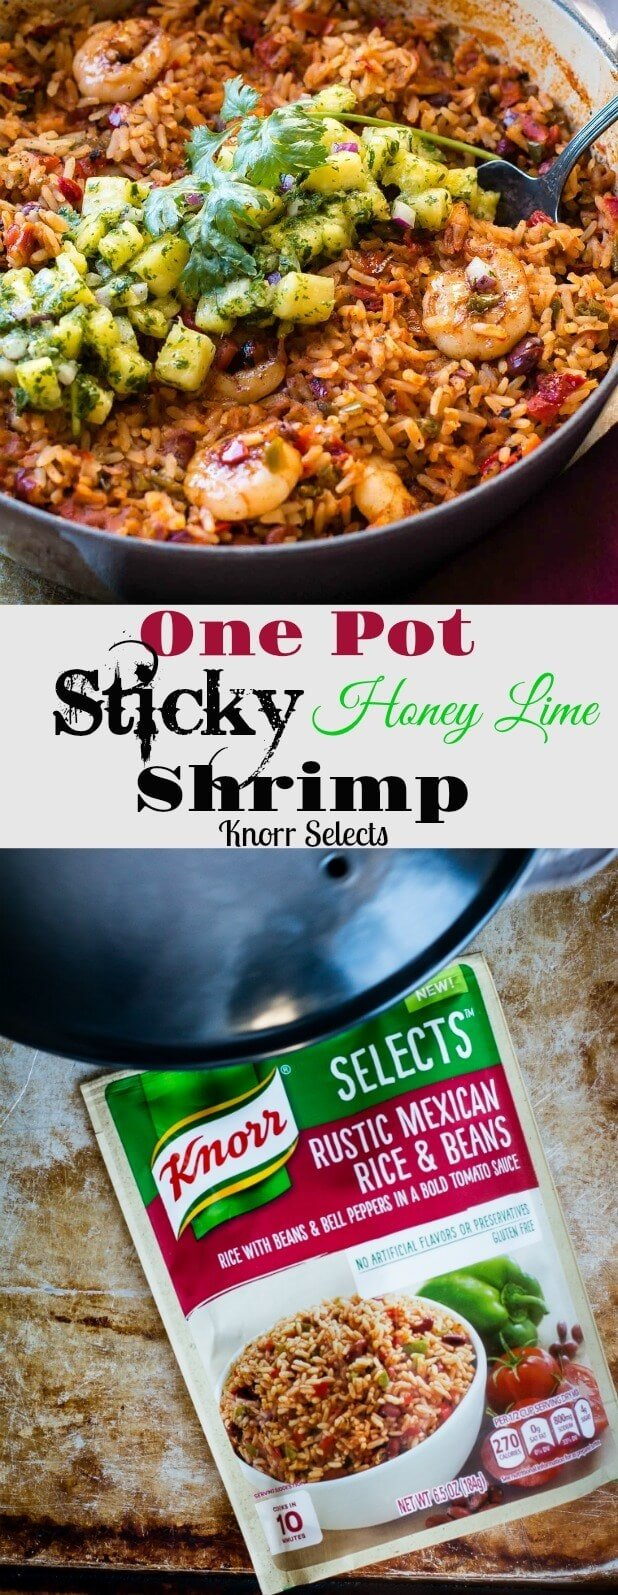 Love our sticky honey lime grilled chicken? This one pot sticky honey lime shrimp with pineapple chimichurri took me only 20 minutes and might be even better! One pot full of spicy Mexican rice, peppers, beans and shrimp all topped off with the yummiest honey lime sauce and pineapple chimichurri ohsweetbasil.com